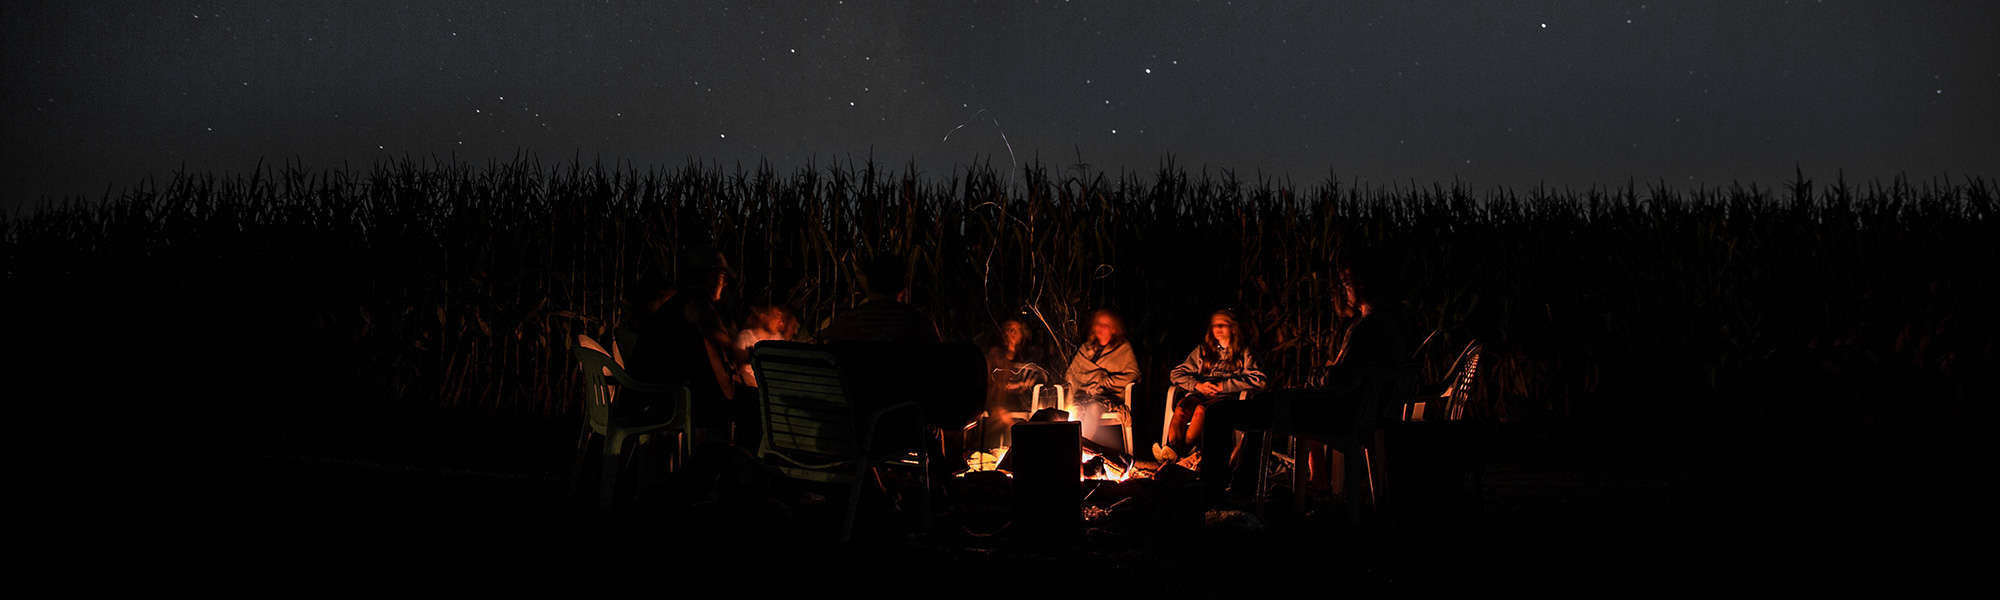 People sitting around a campfire